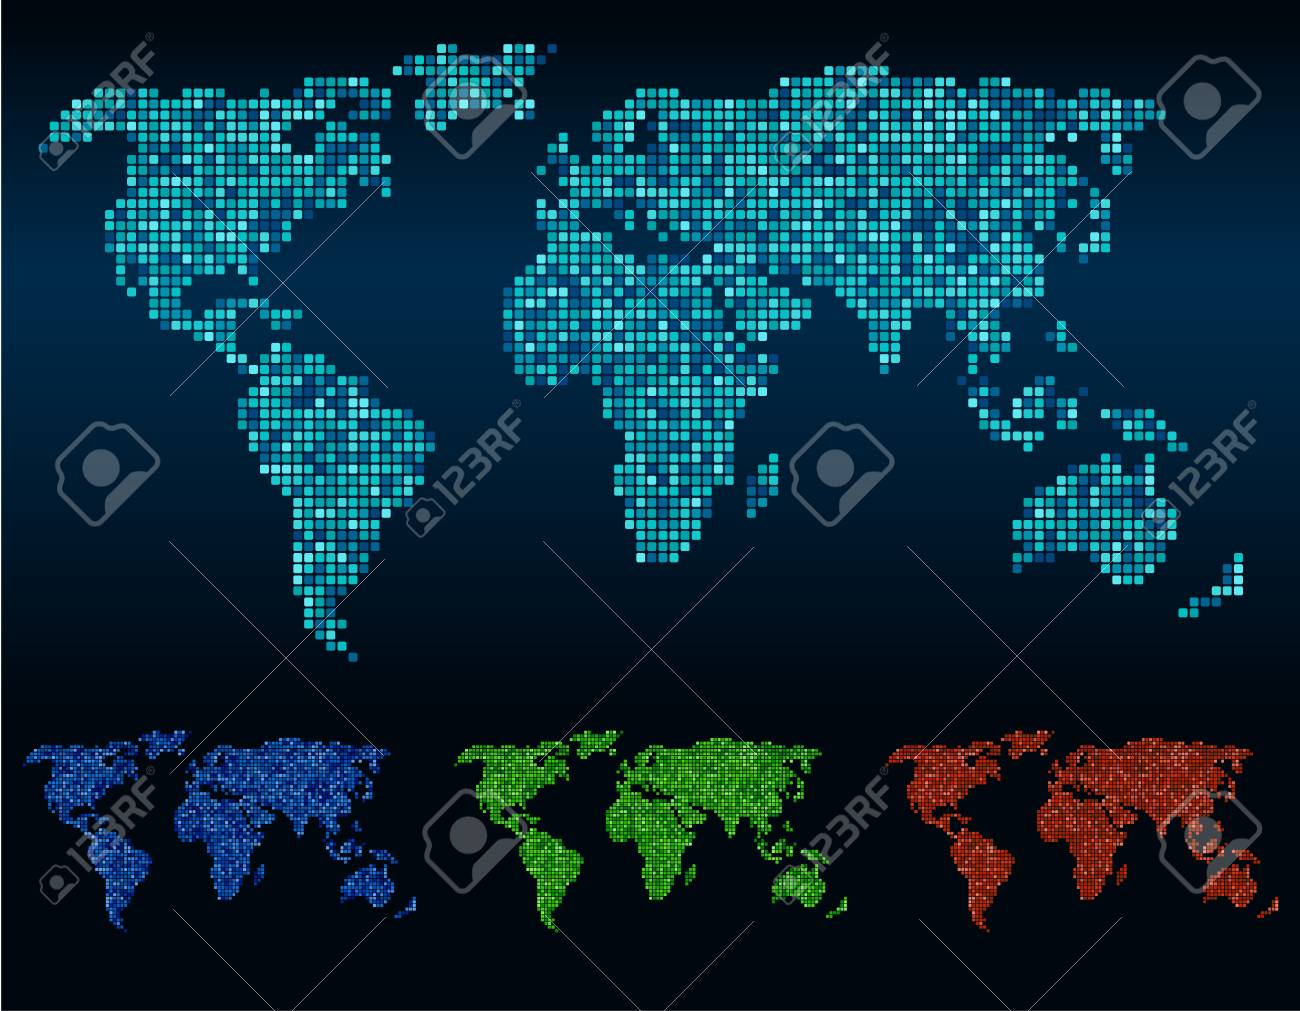 Abstract square corners world map vector 4 tone color royalty free abstract square corners world map vector 4 tone color stock vector 42116424 gumiabroncs Images